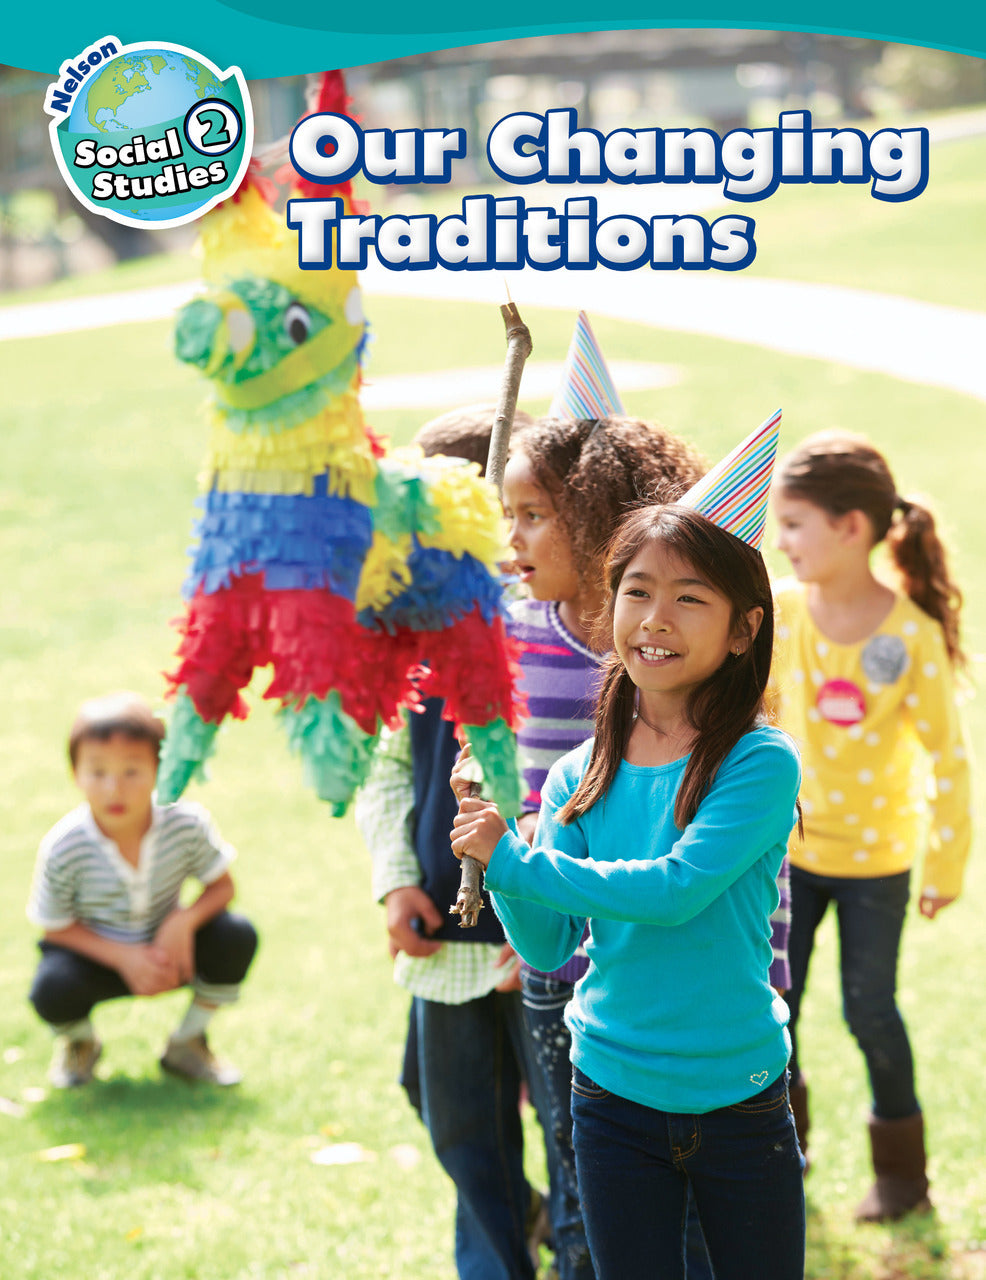 Nelson Social Studies 2 Our Changing Traditions Student Book